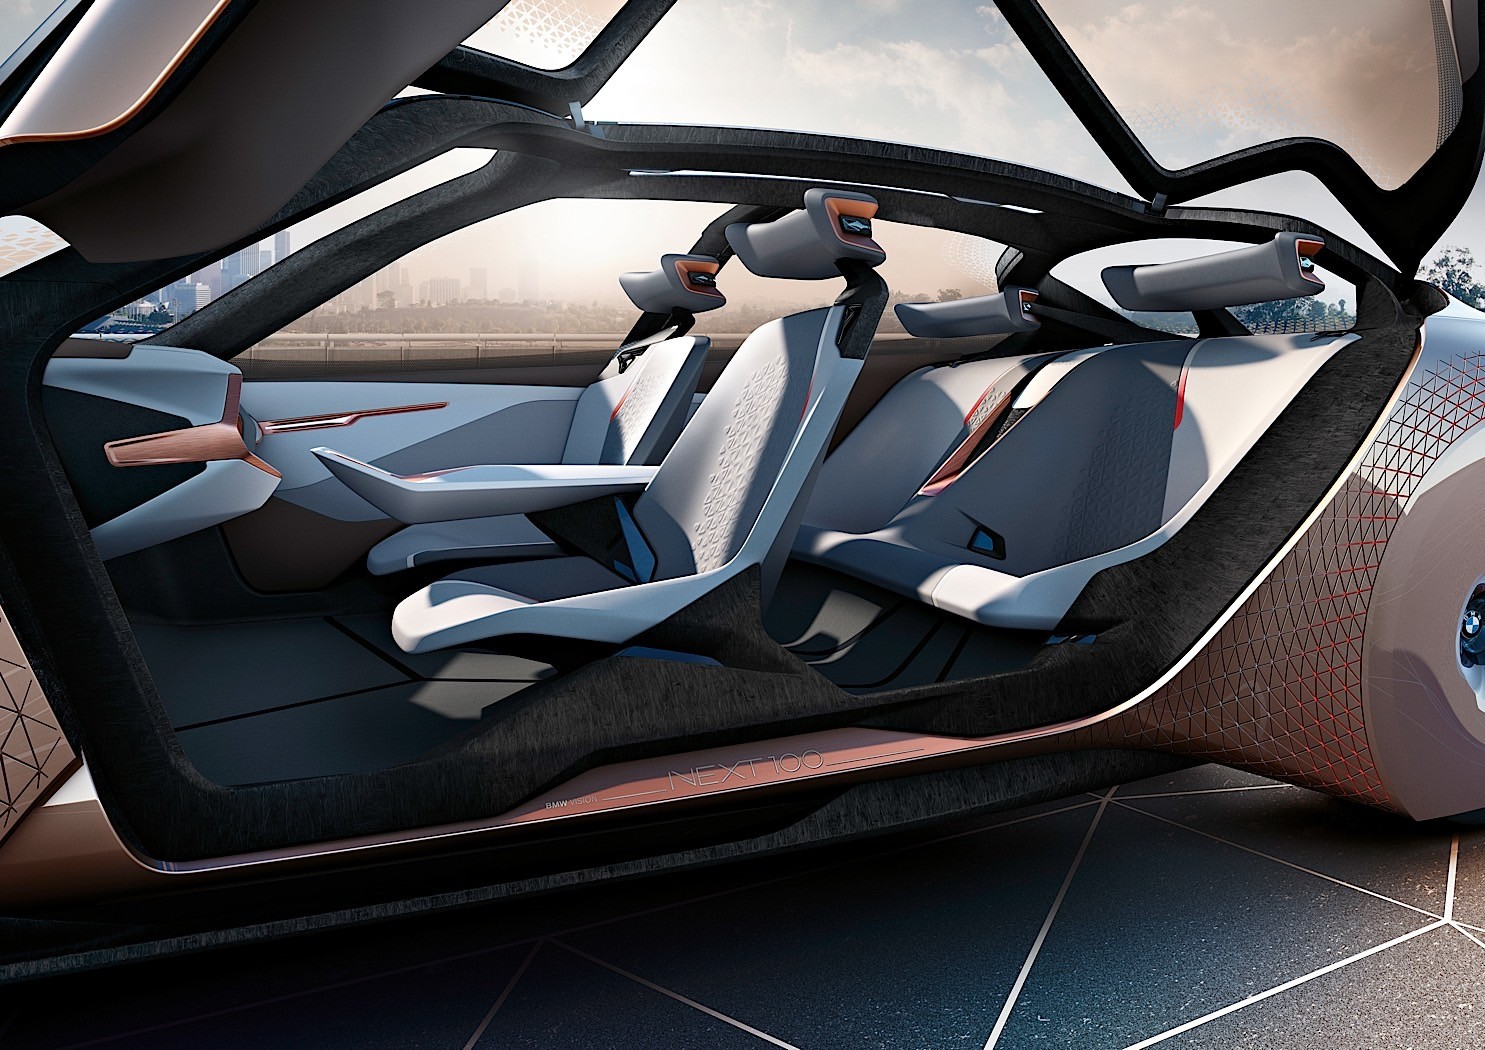 Bmw Vision Next 100 Futuristic Moving Wheel Arches And